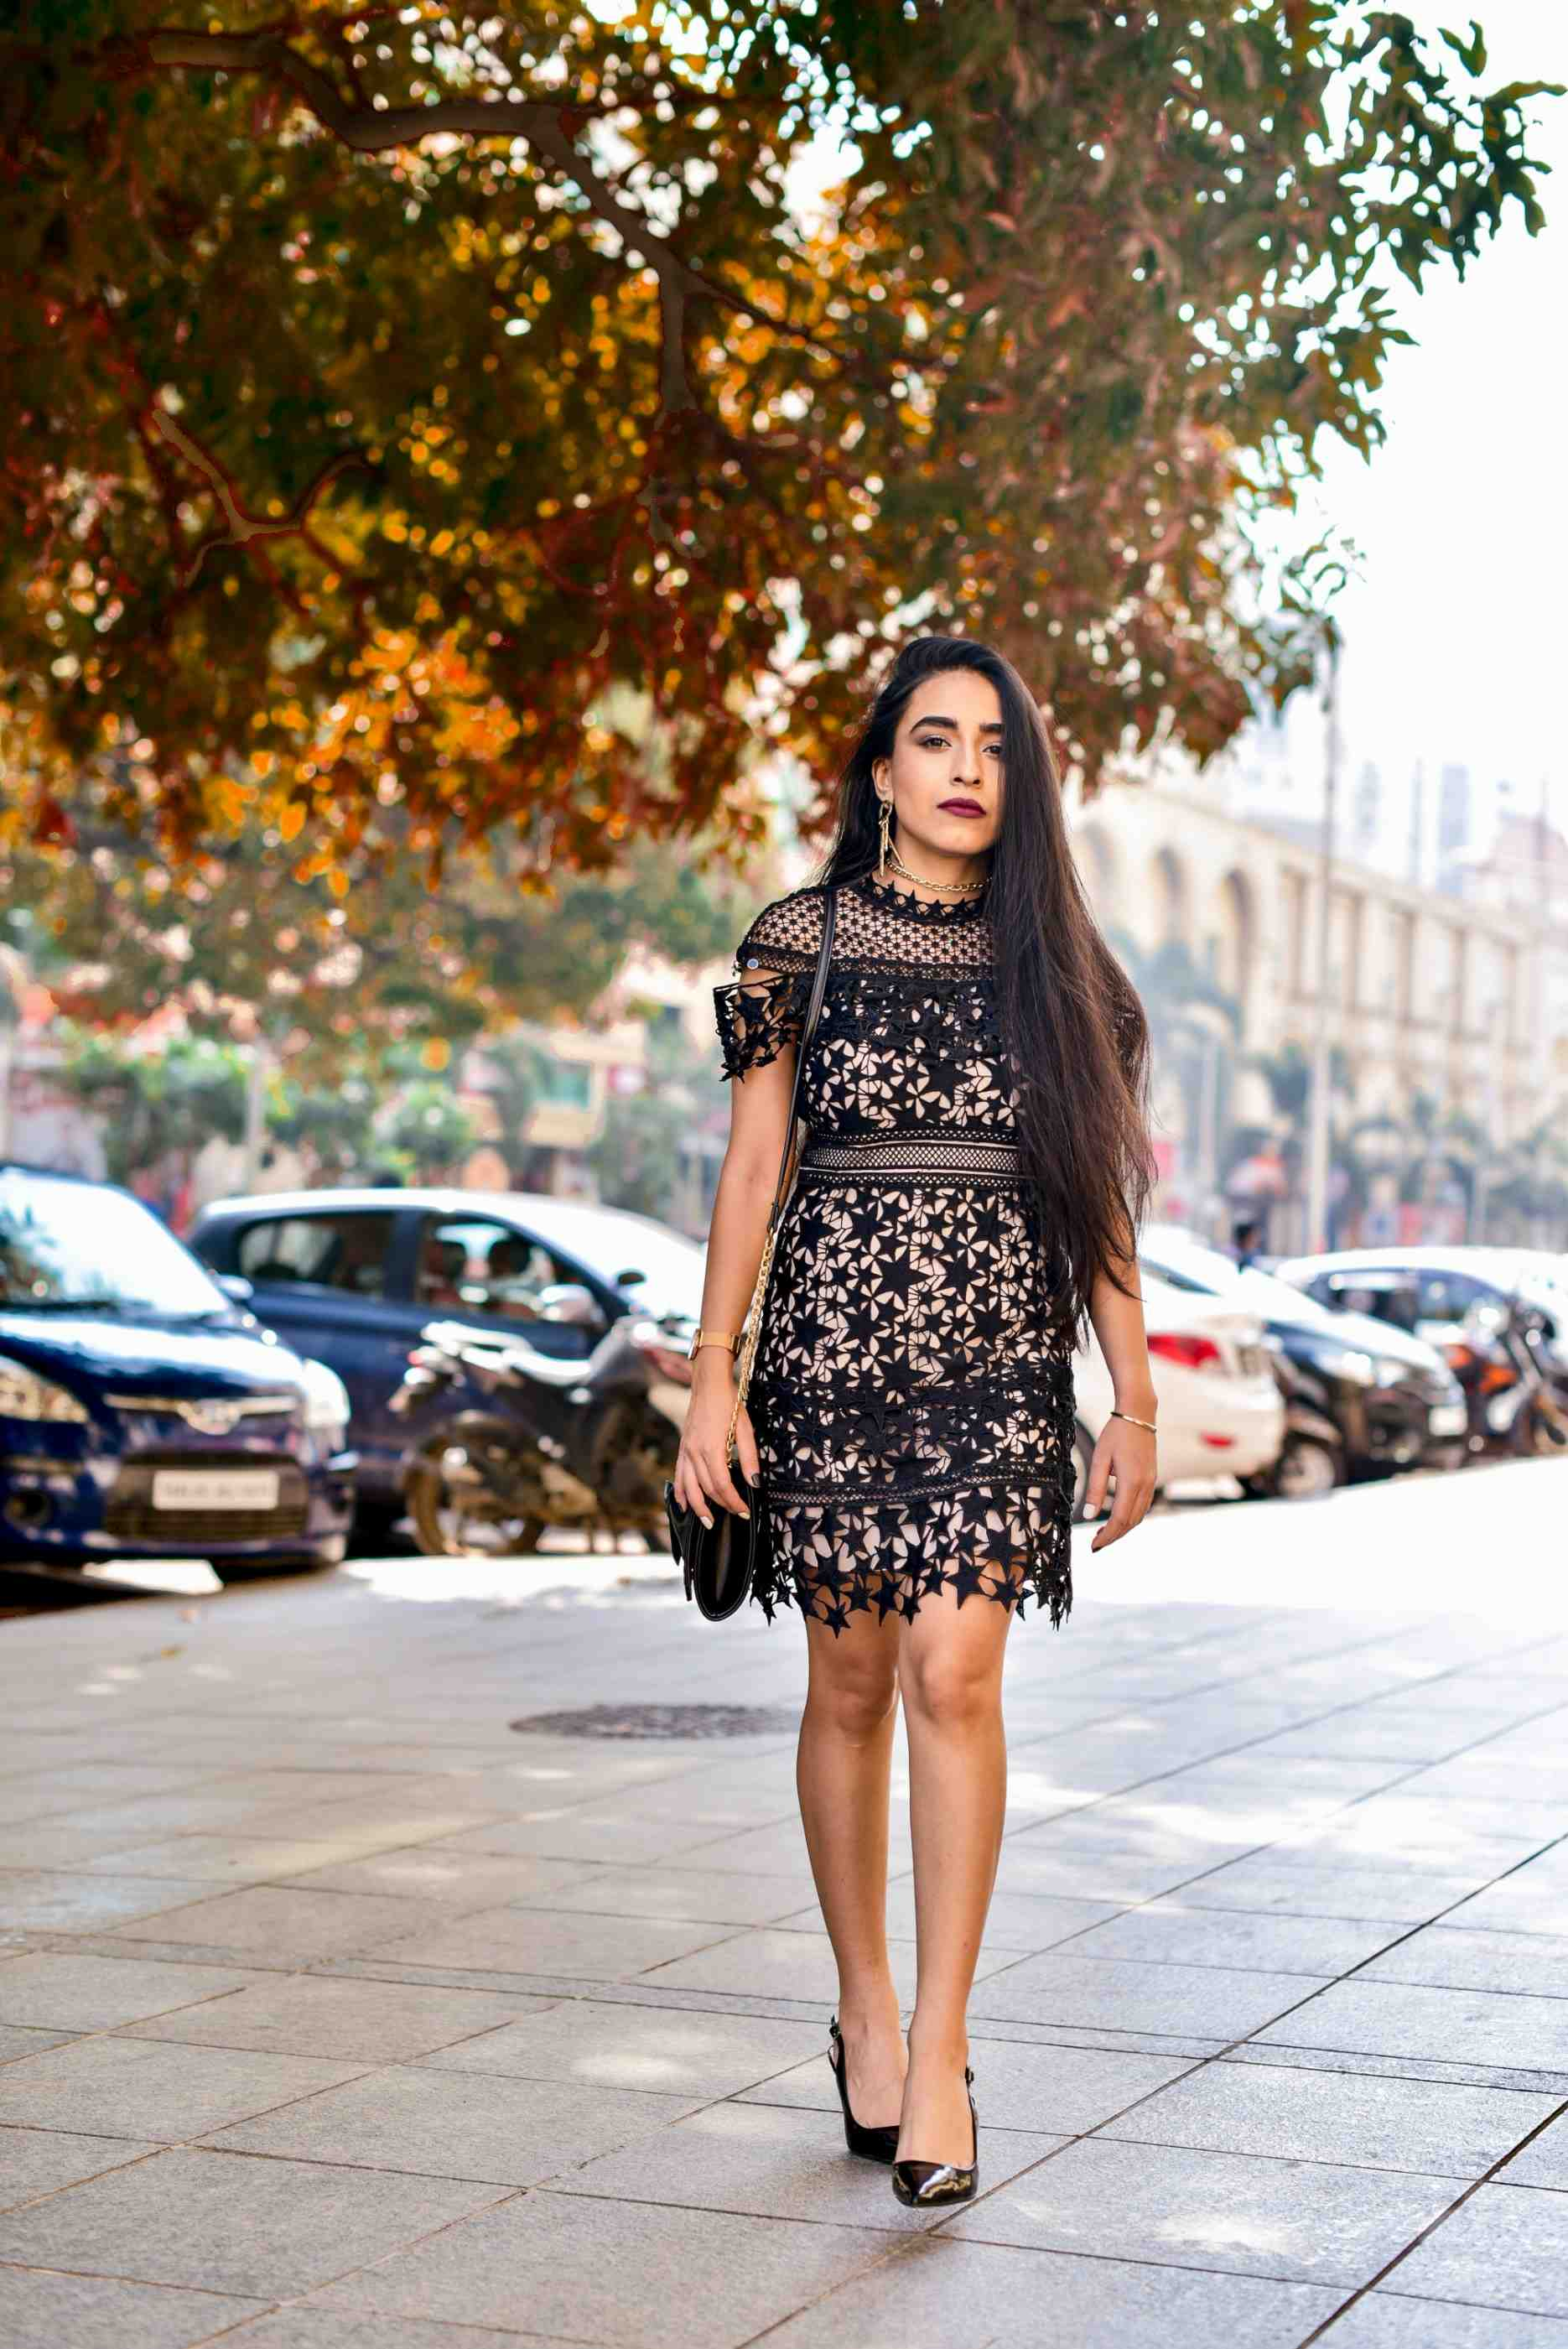 new year dress , new year party, nye 2018, party outfit ideas nude dress self portrait black dress lbd street style